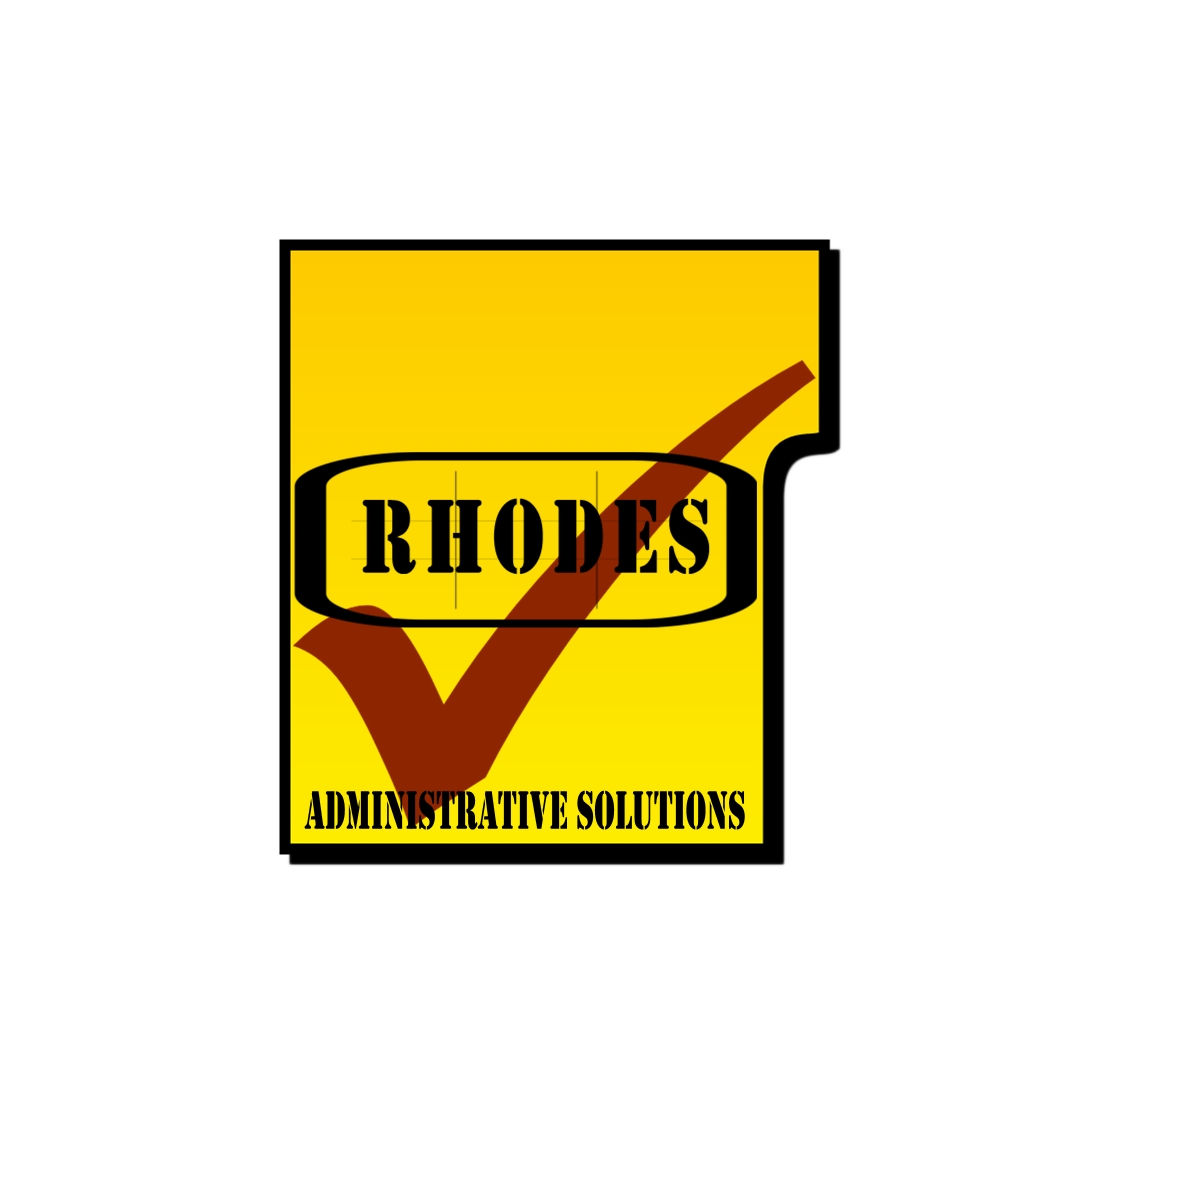 Logo Design by Joseph calunsag Cagaanan - Entry No. 55 in the Logo Design Contest Rhodes Administrative Solutions.